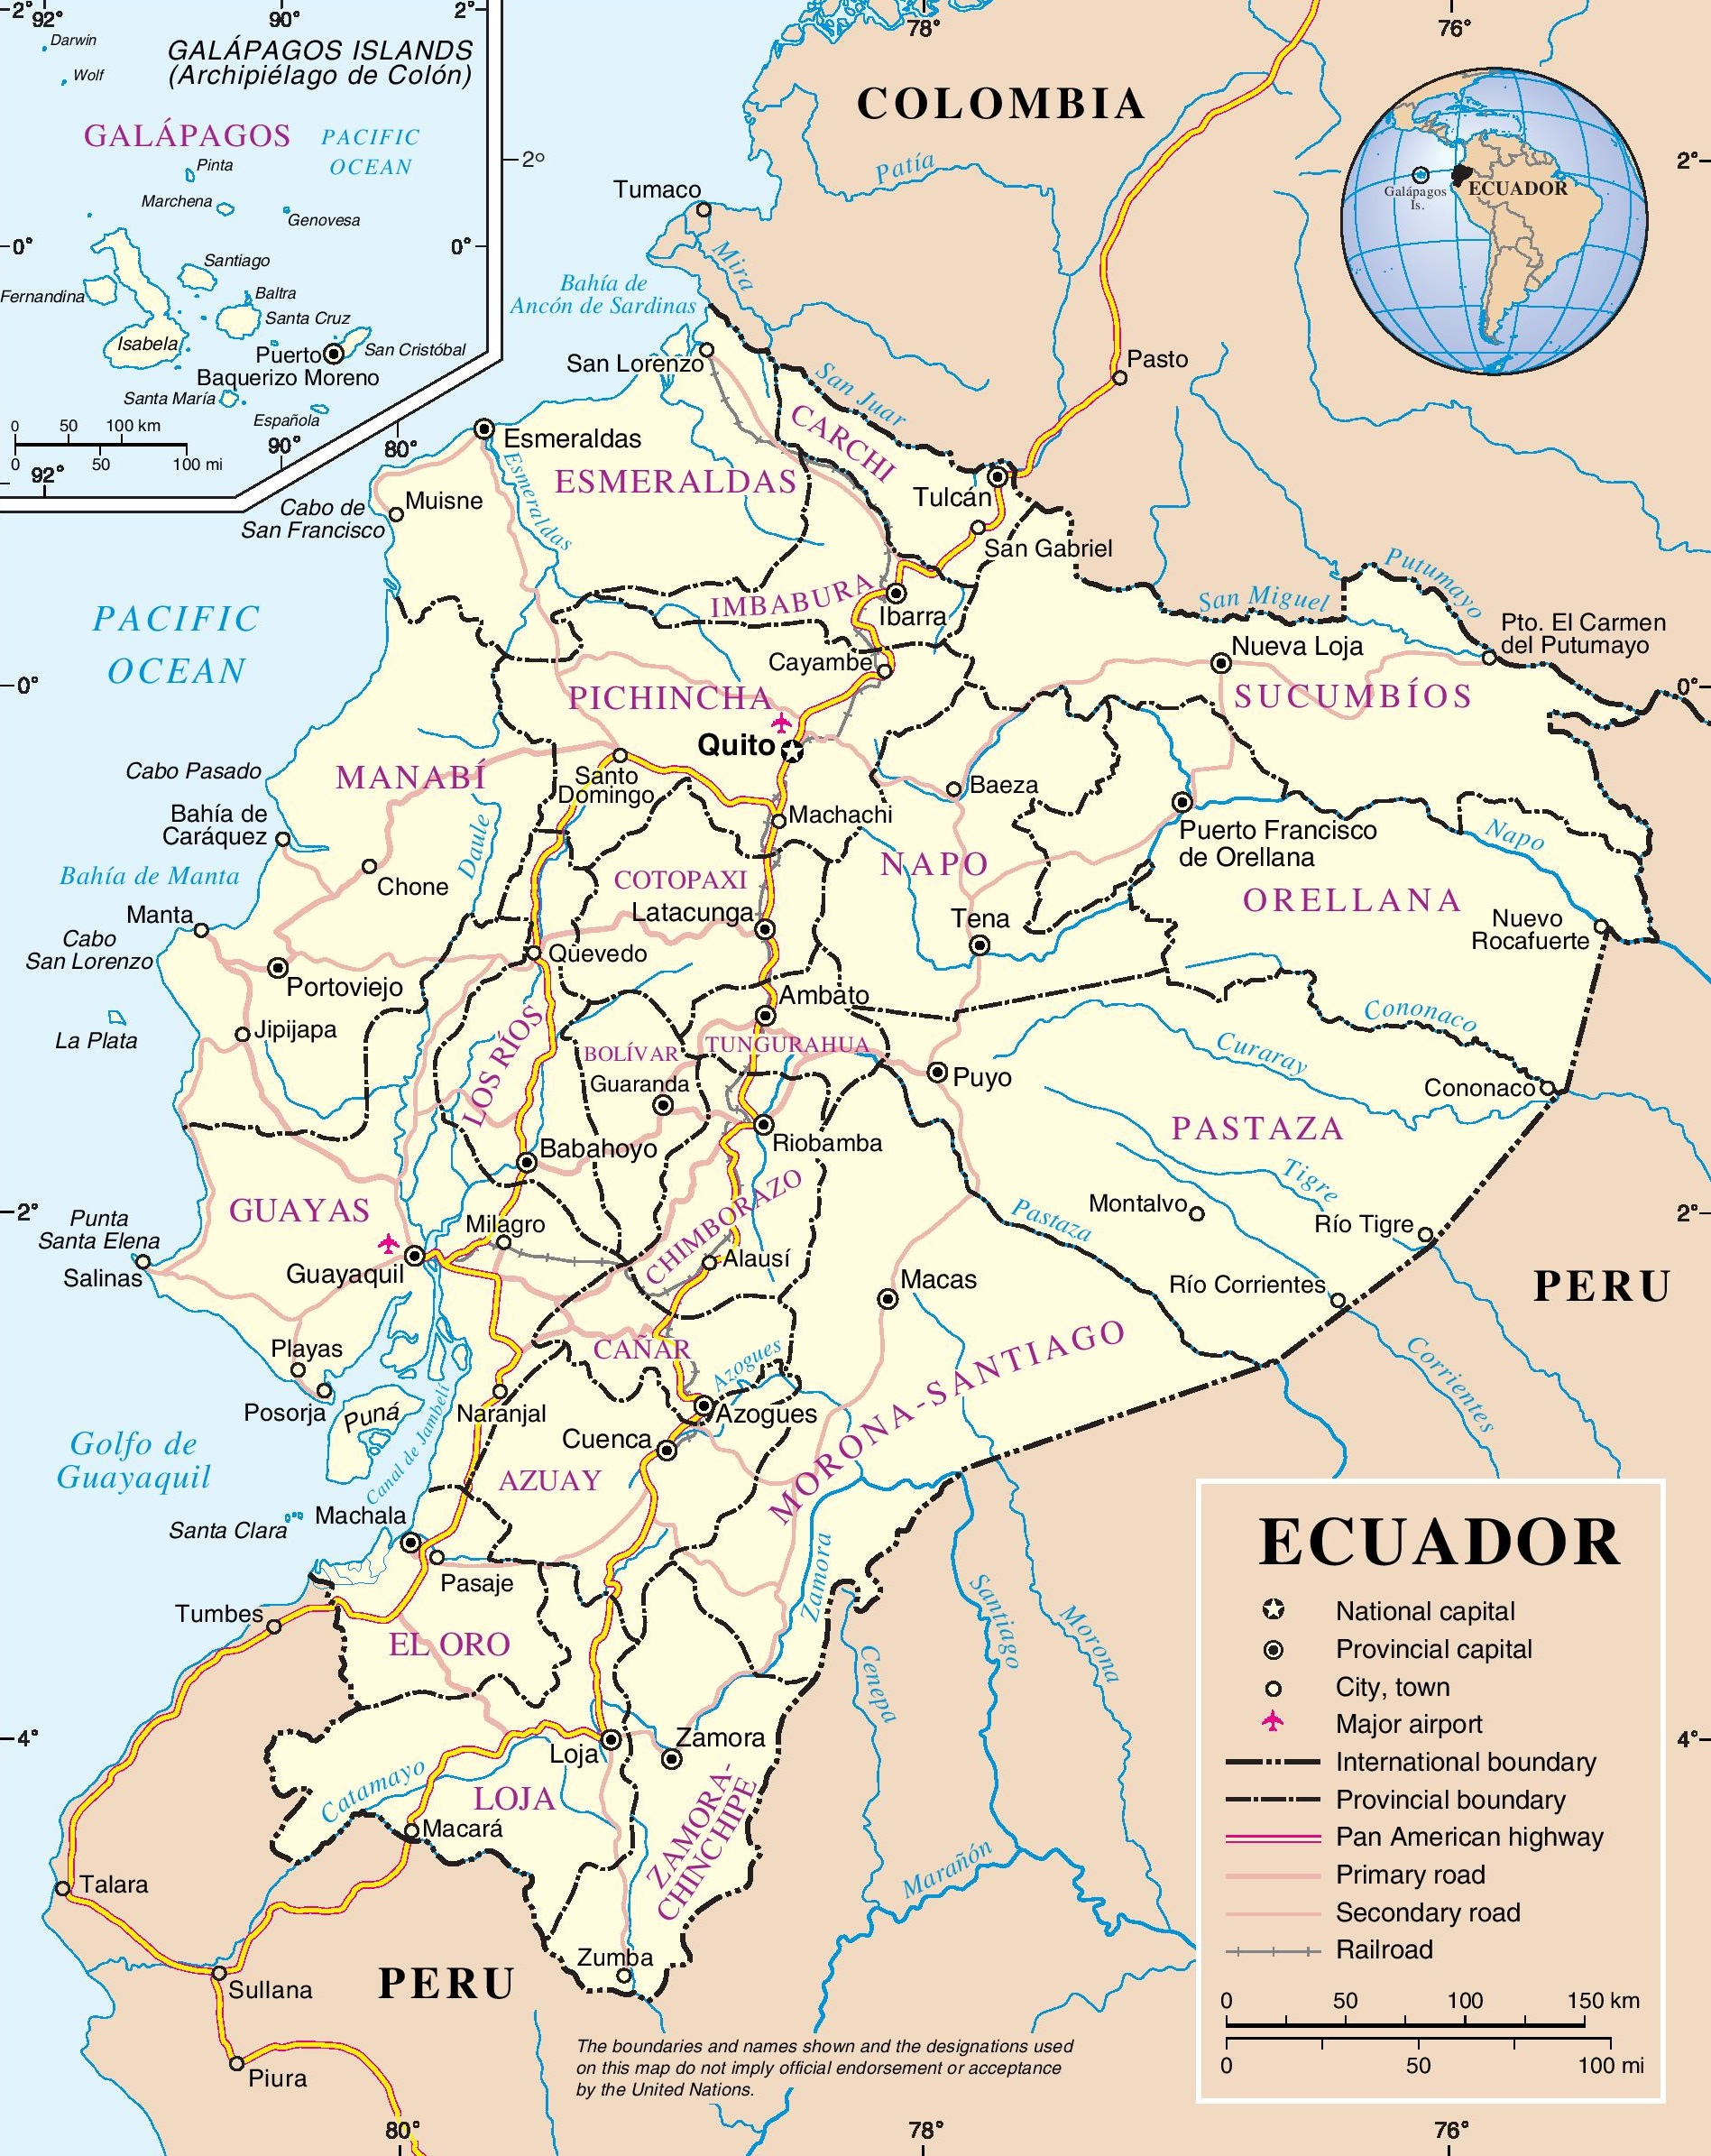 Ecuador Maps Maps Of Ecuador - Road map of peru